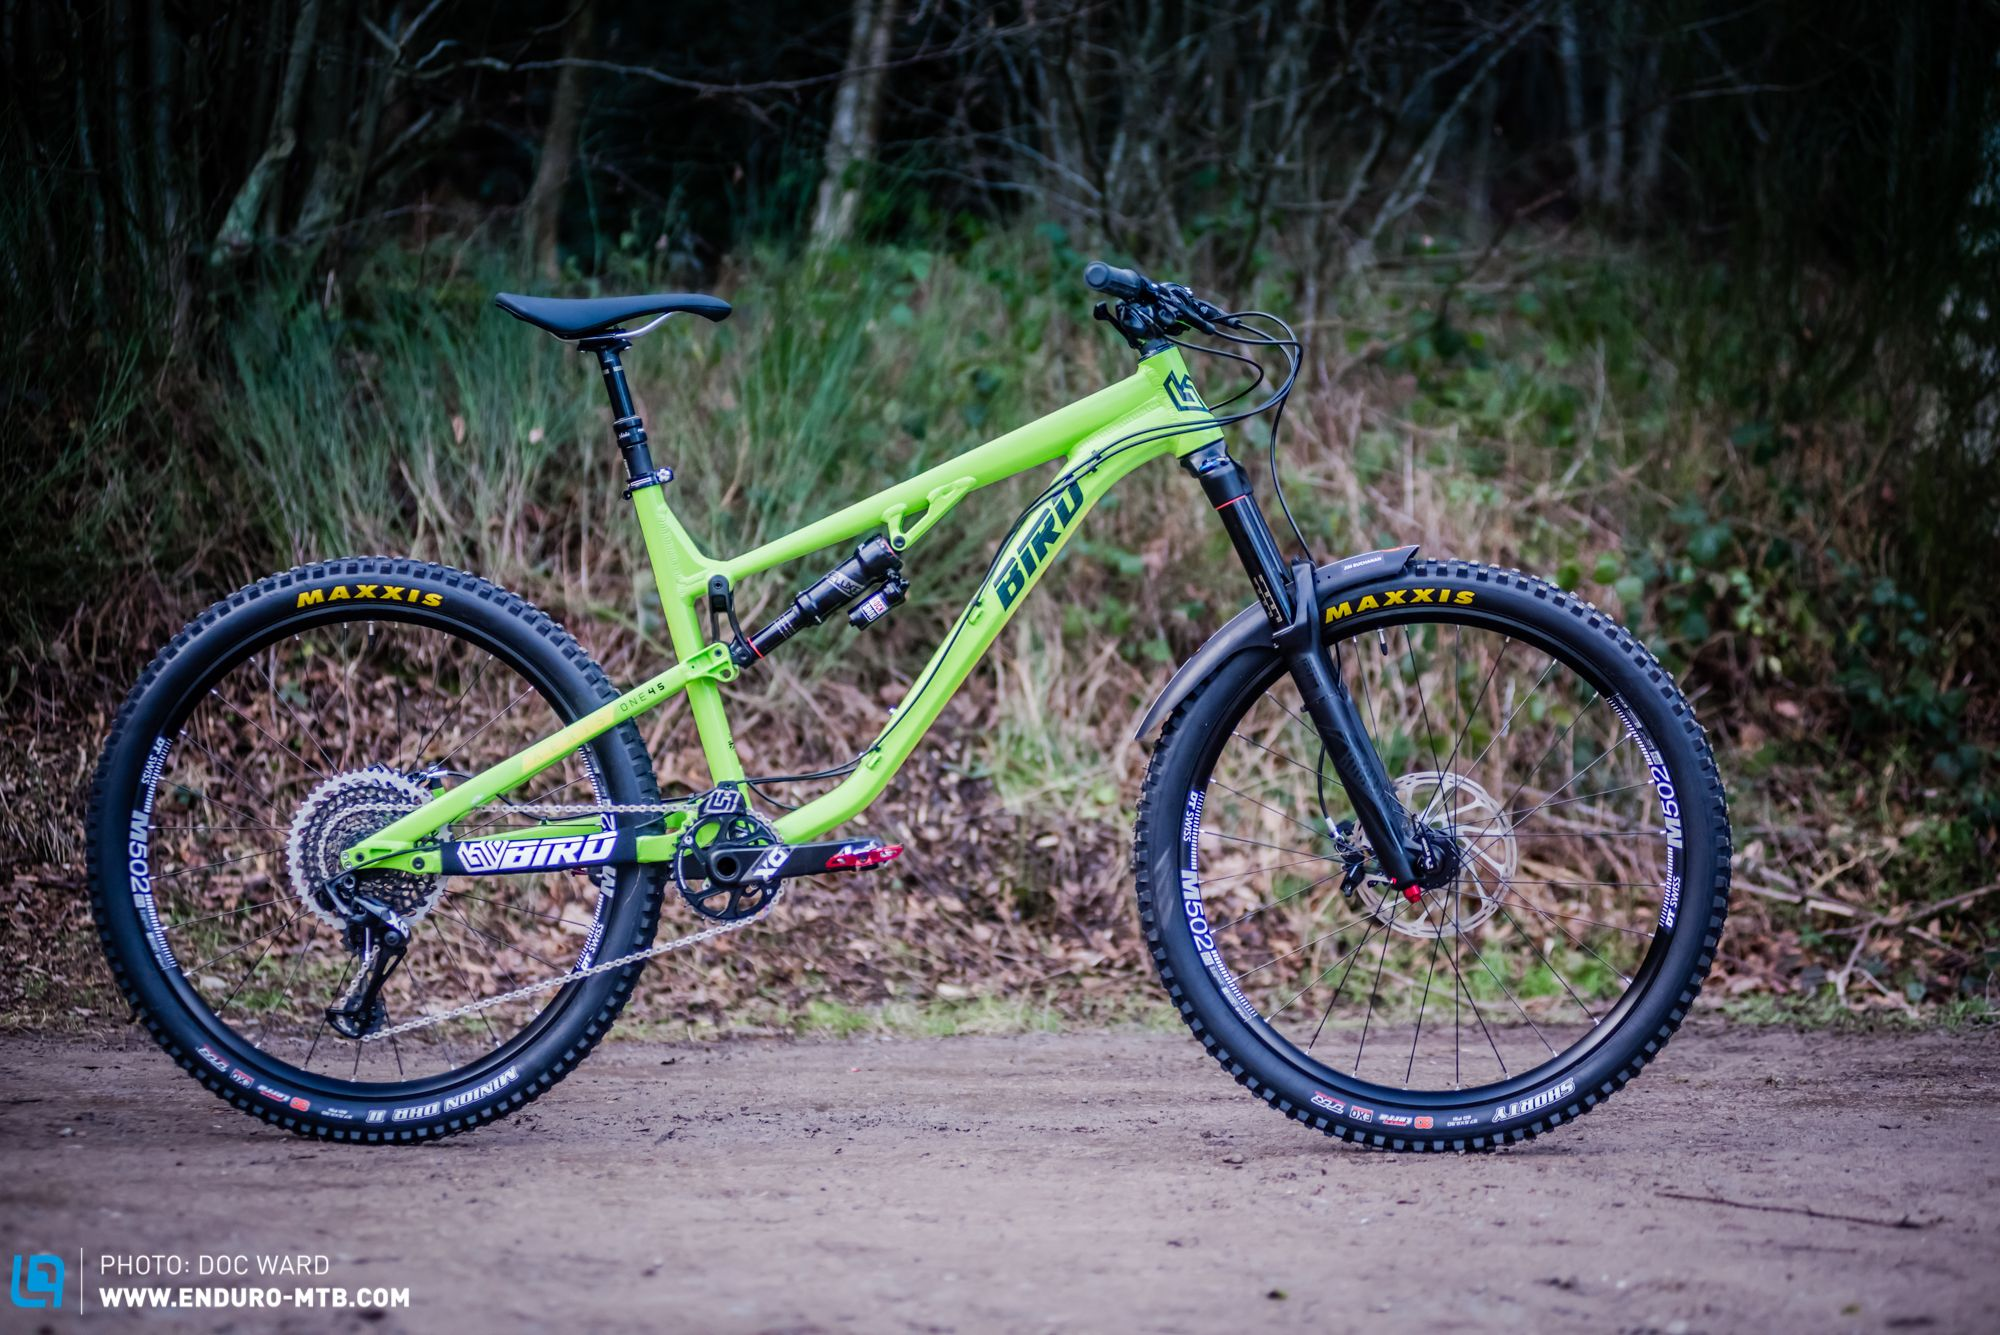 Exclusive First Ride The New Bird Aeris 145 Enduro Mtb Riding